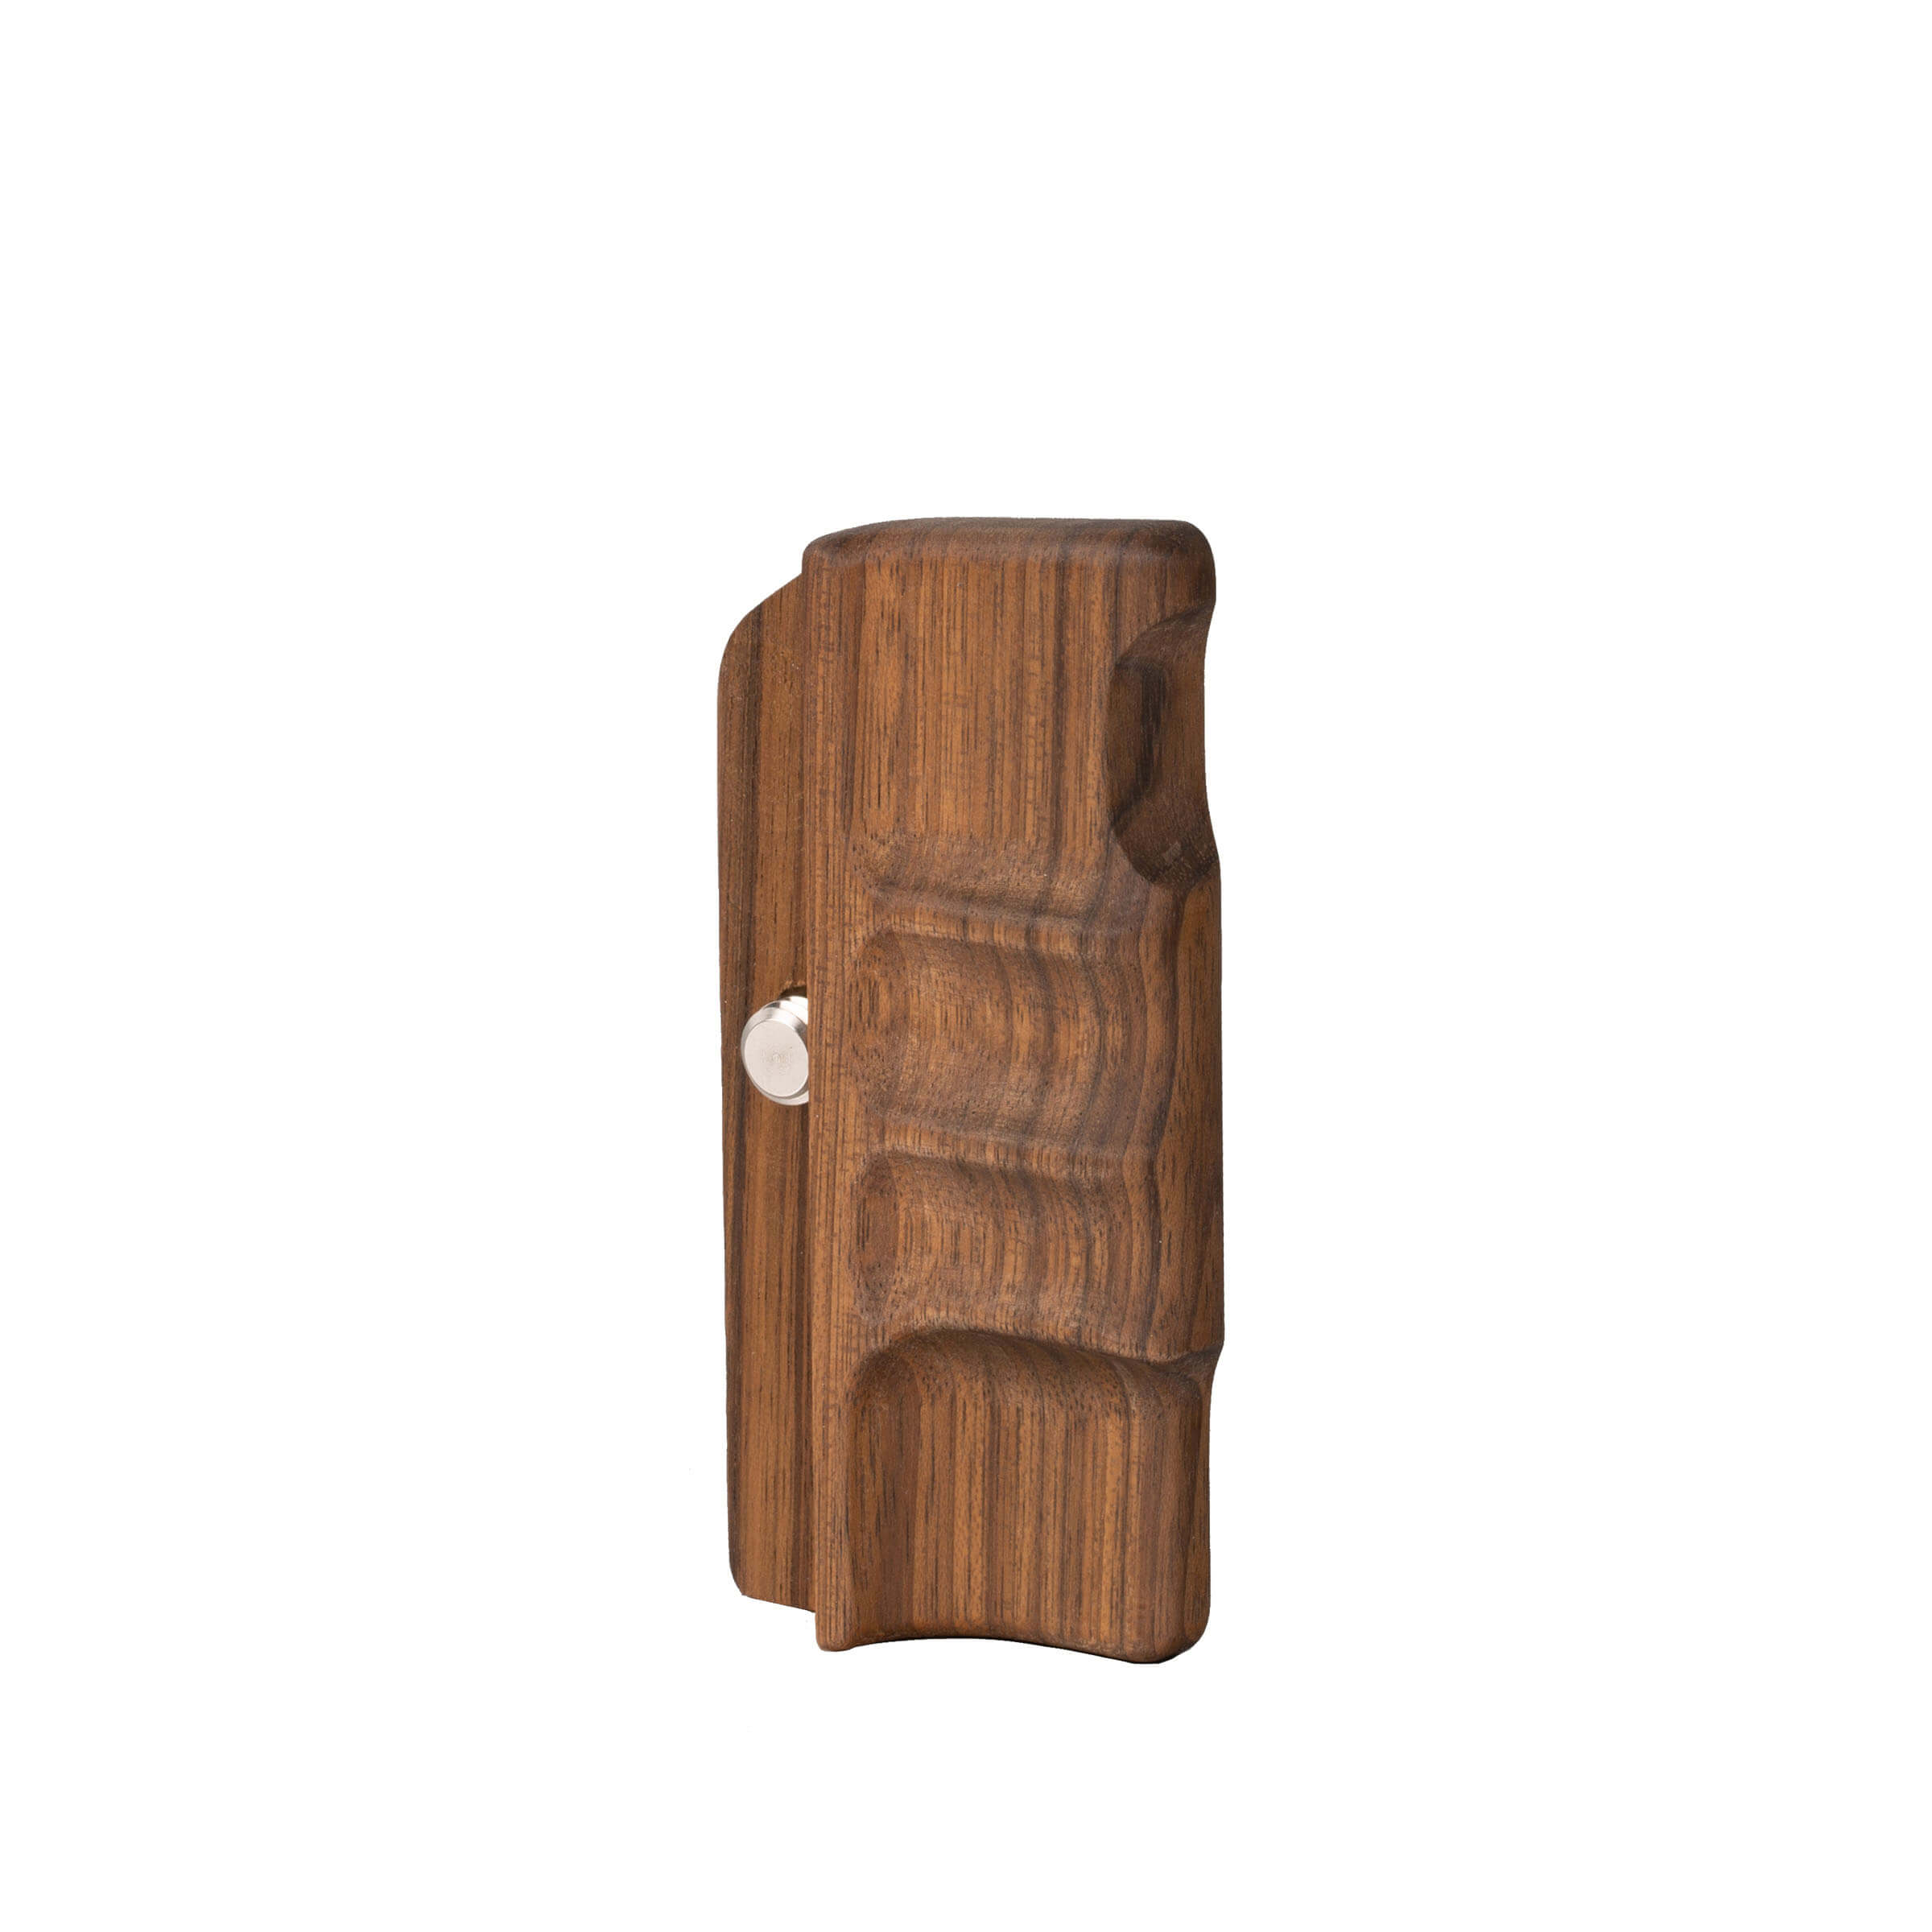 ALPA PLUS handgrip left, rosewood natural